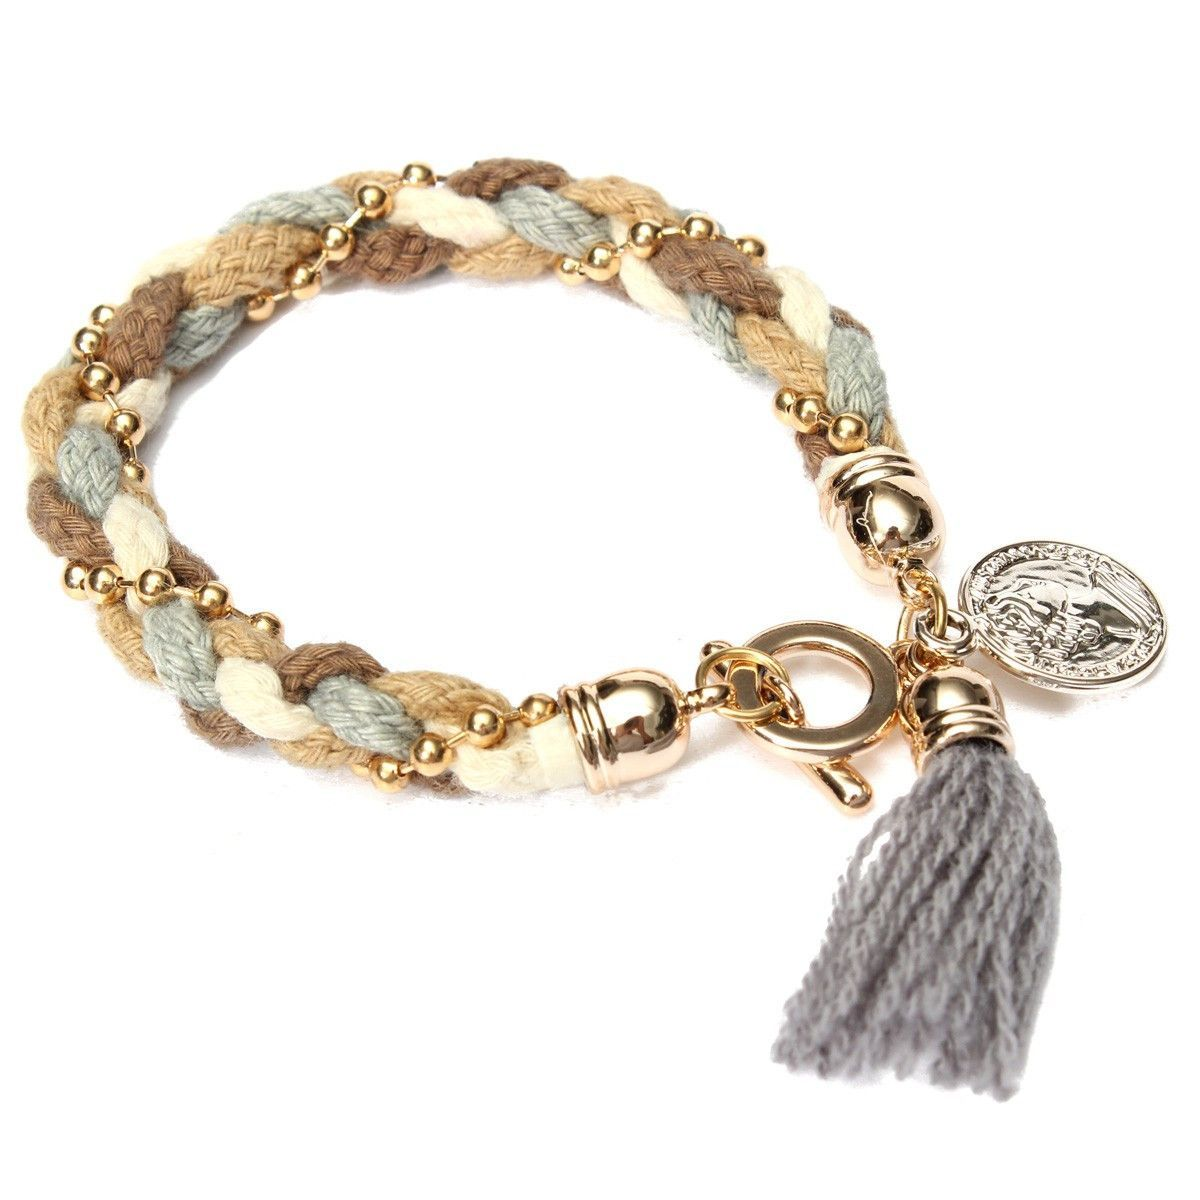 Beads tassels braided rope pendant bracelets products pinterest